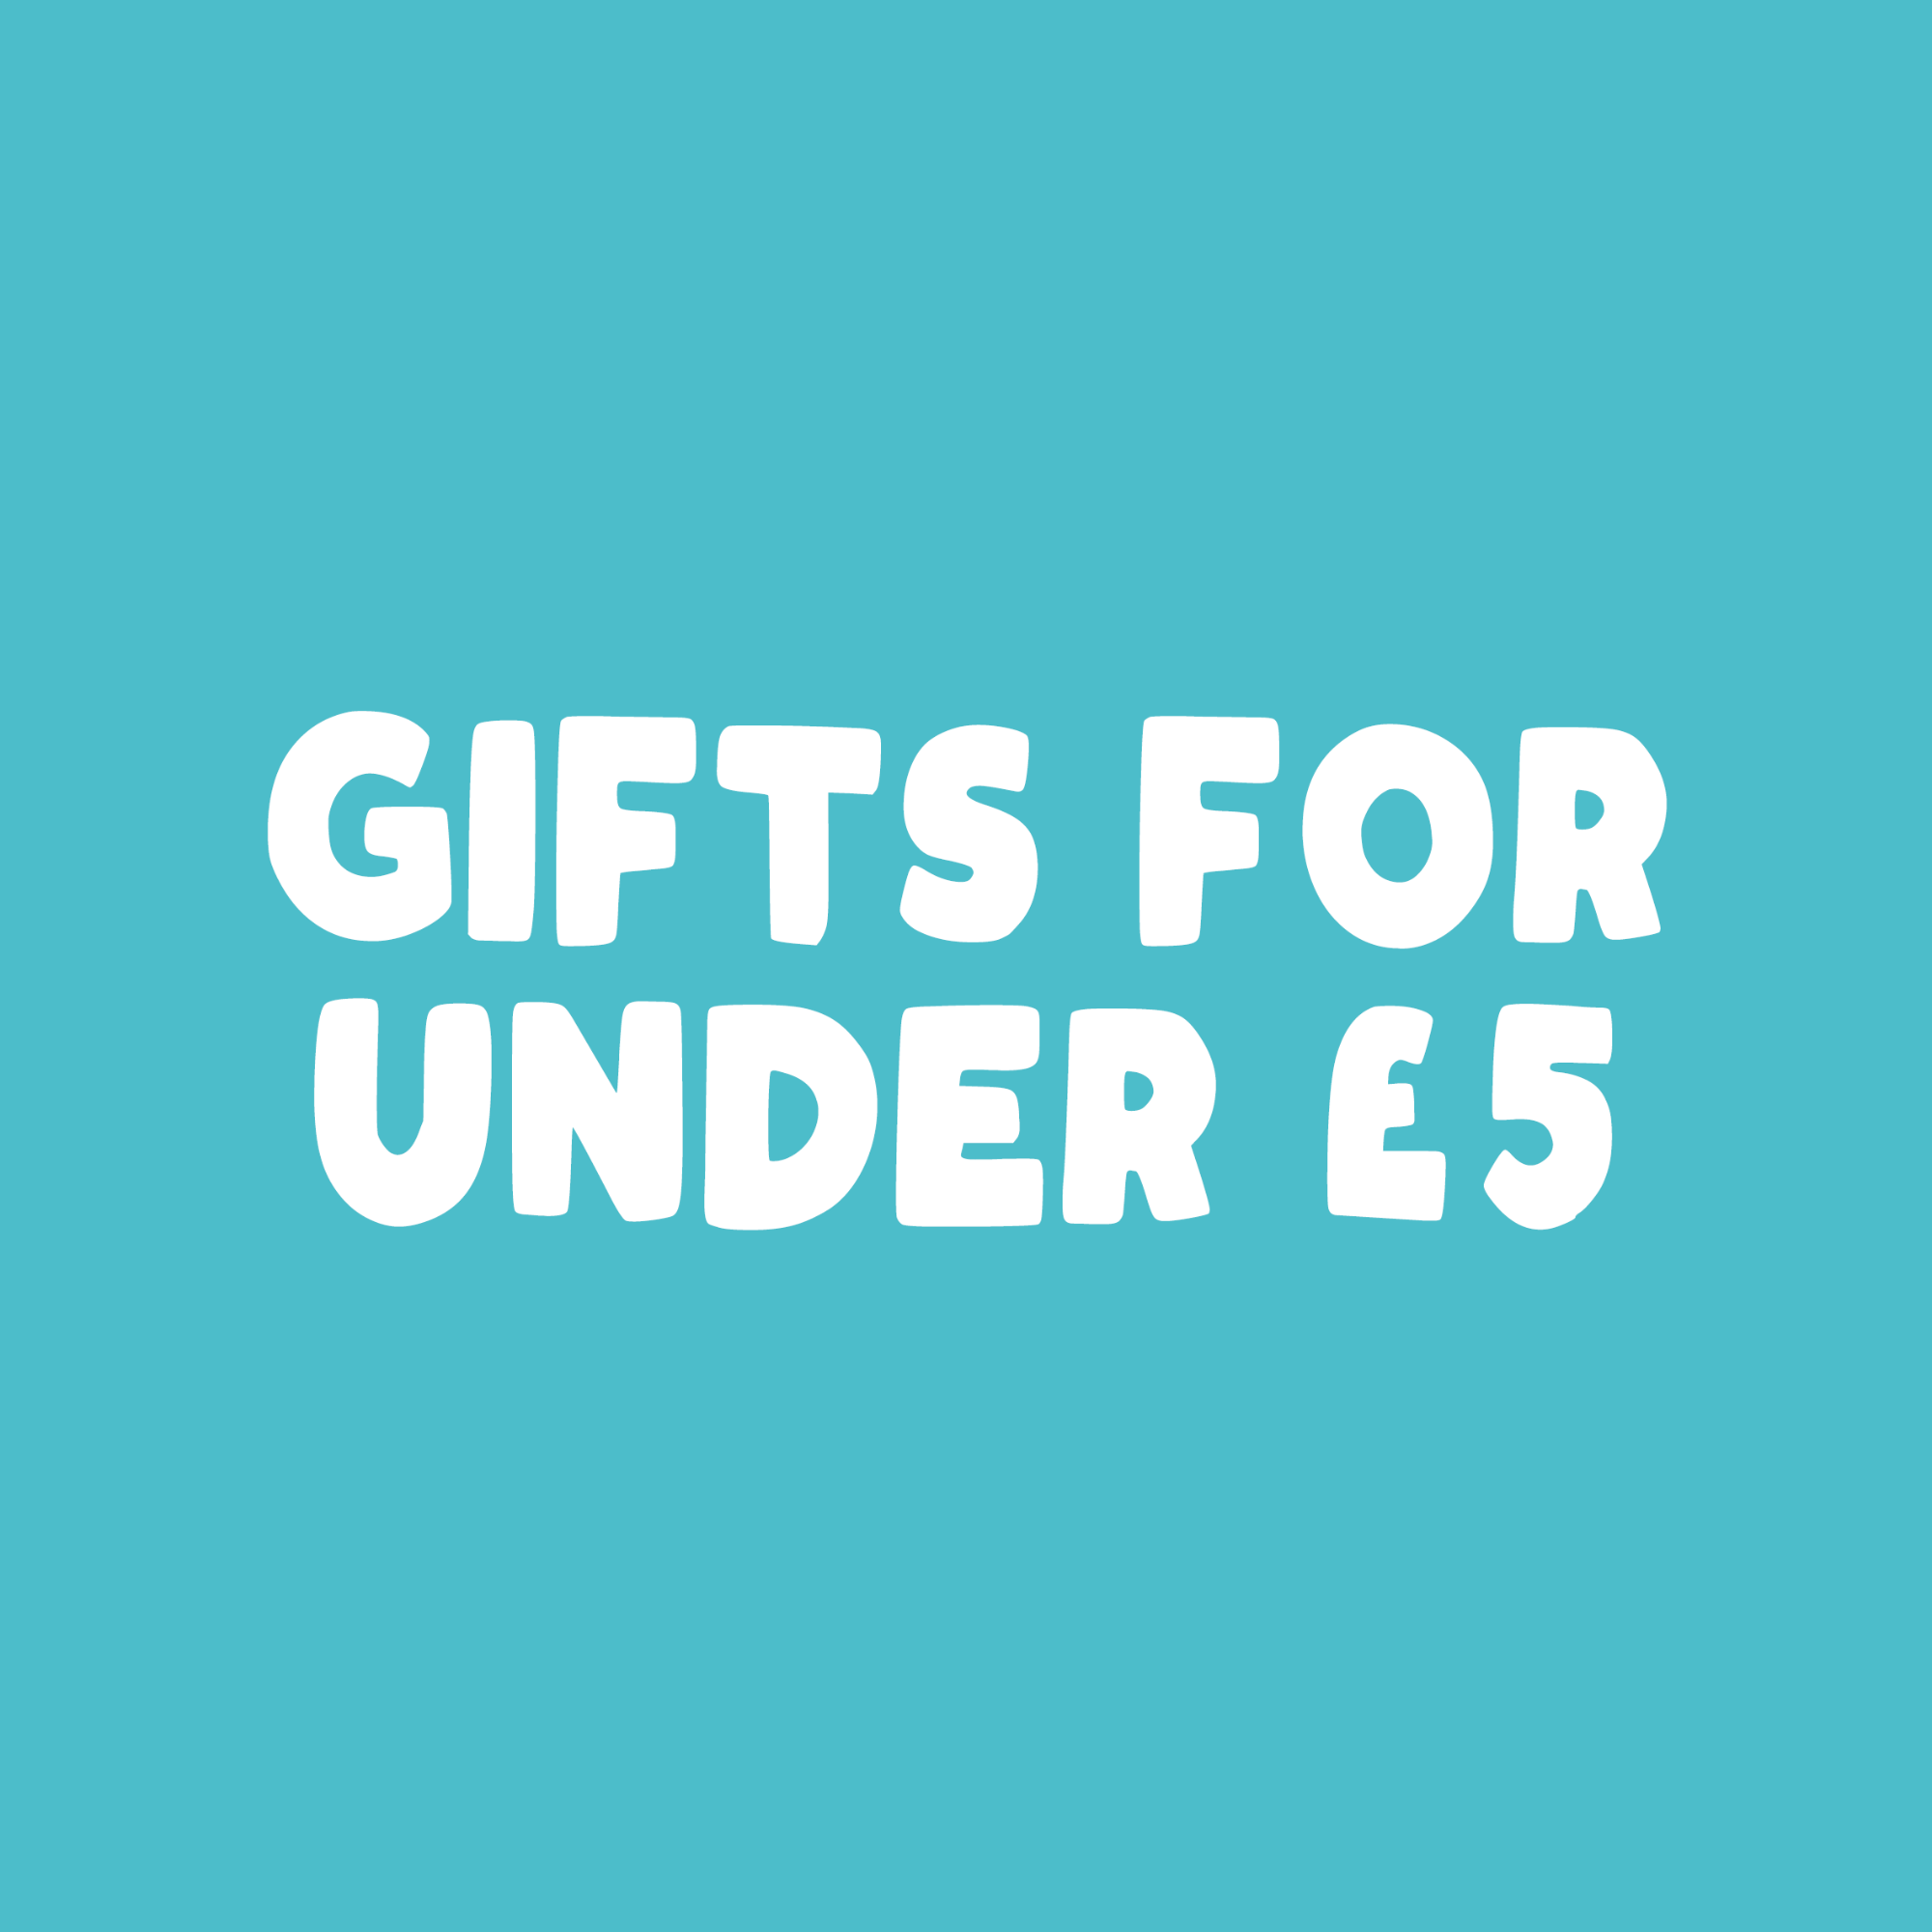 Gifts for under £5